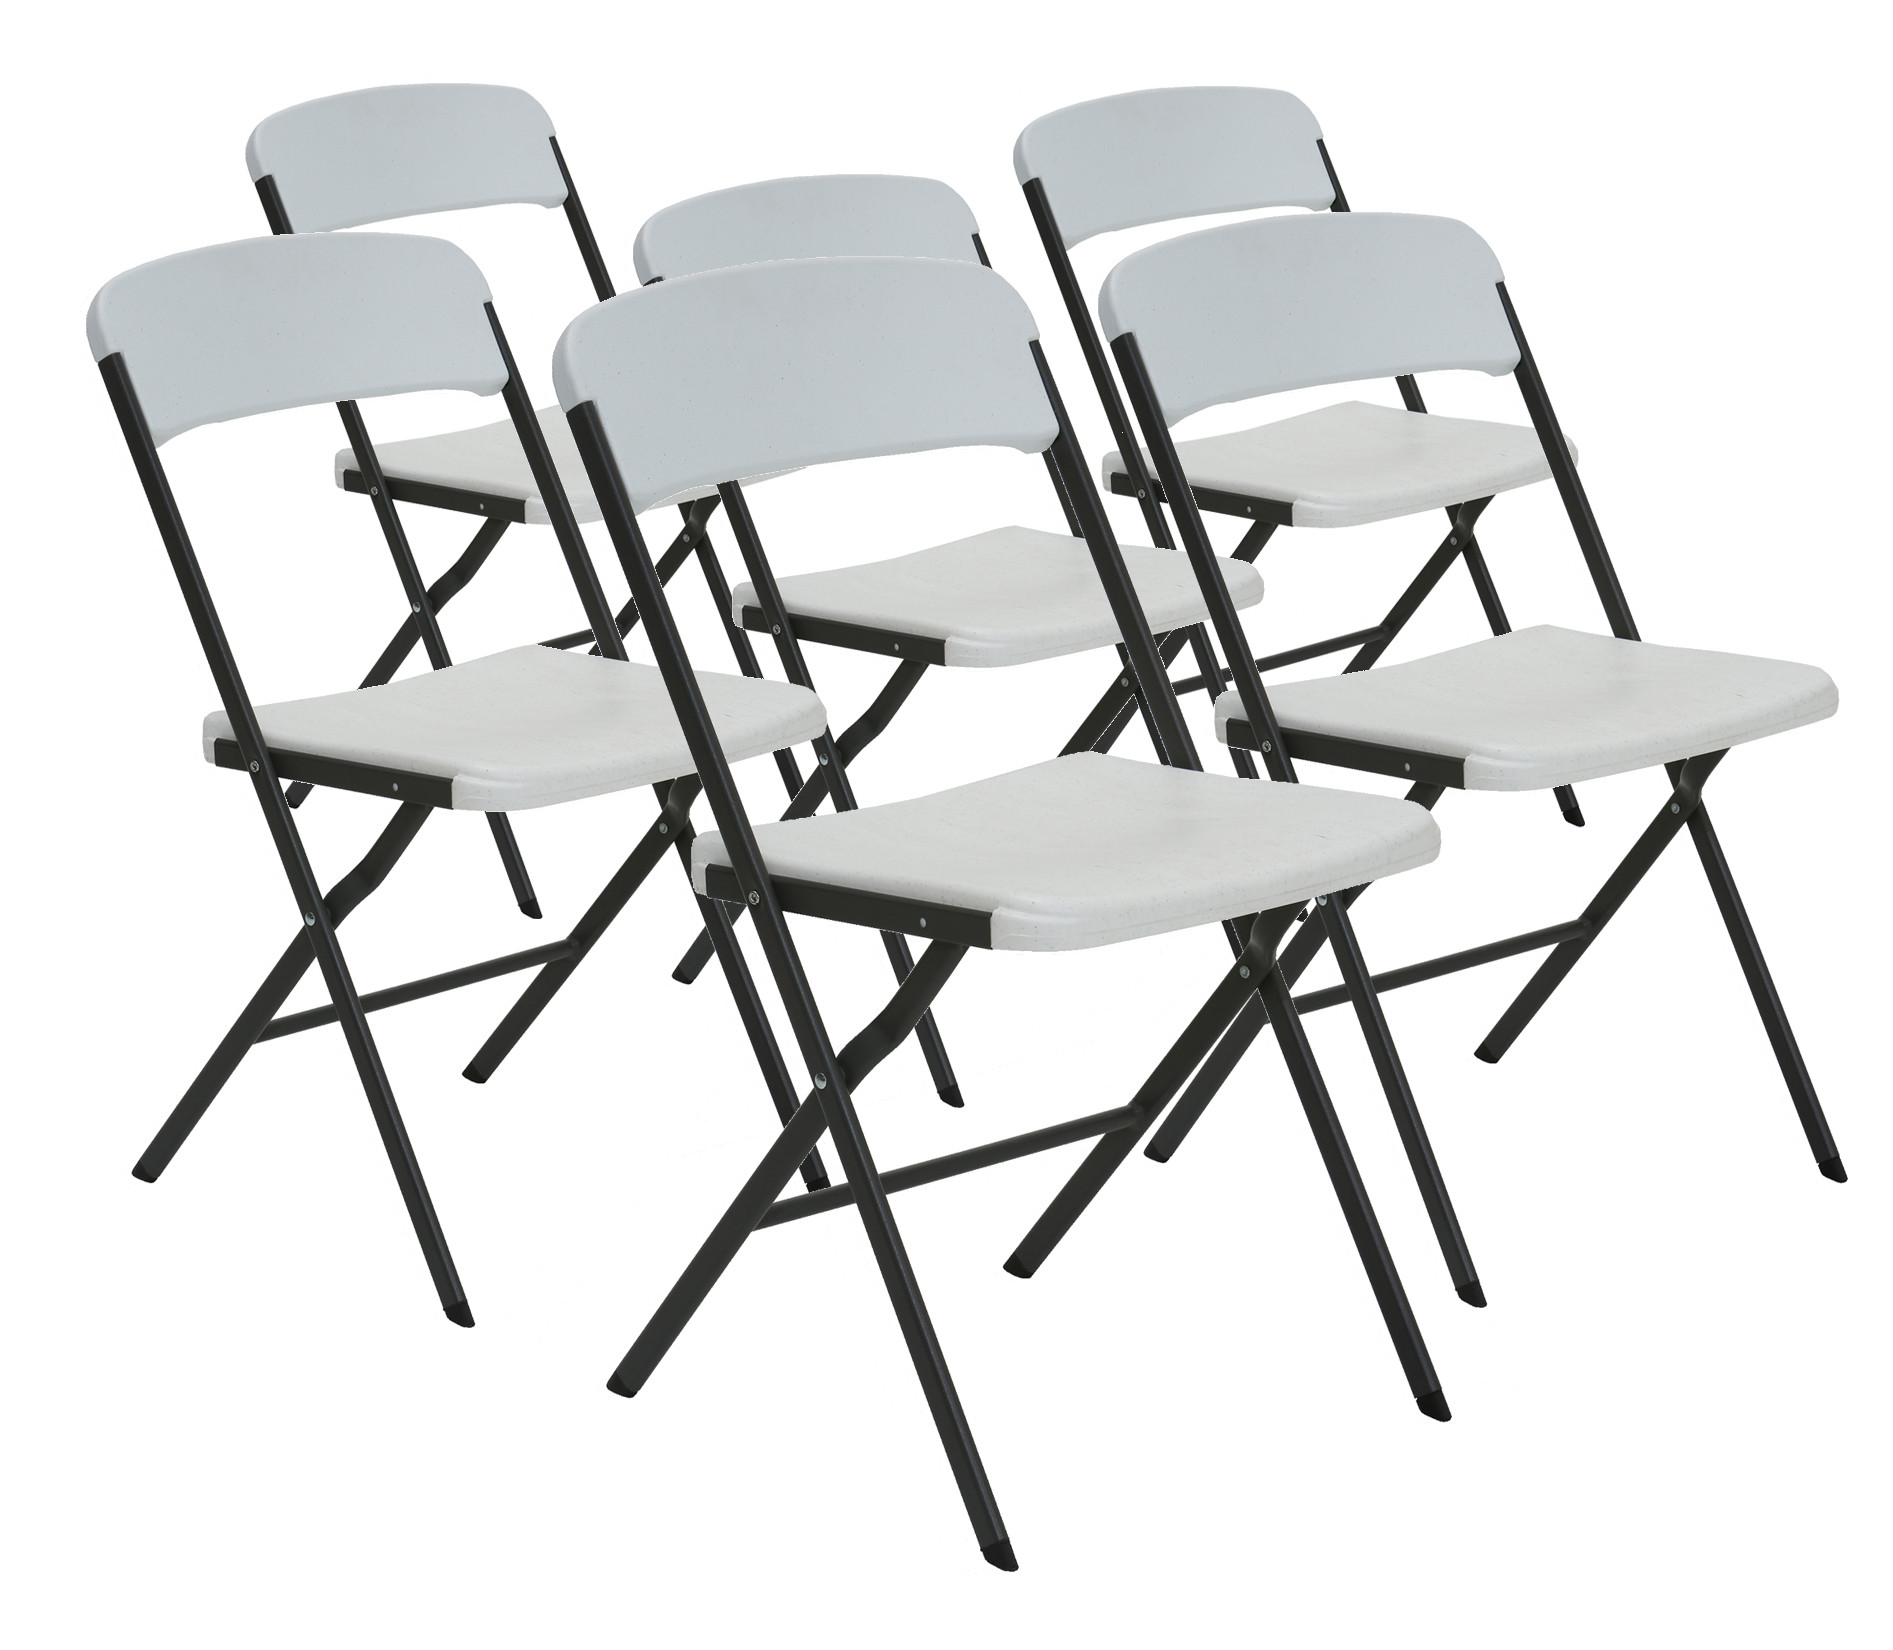 1893x1650 Lifetime 684016 Contemporary Residential Folding Chair White